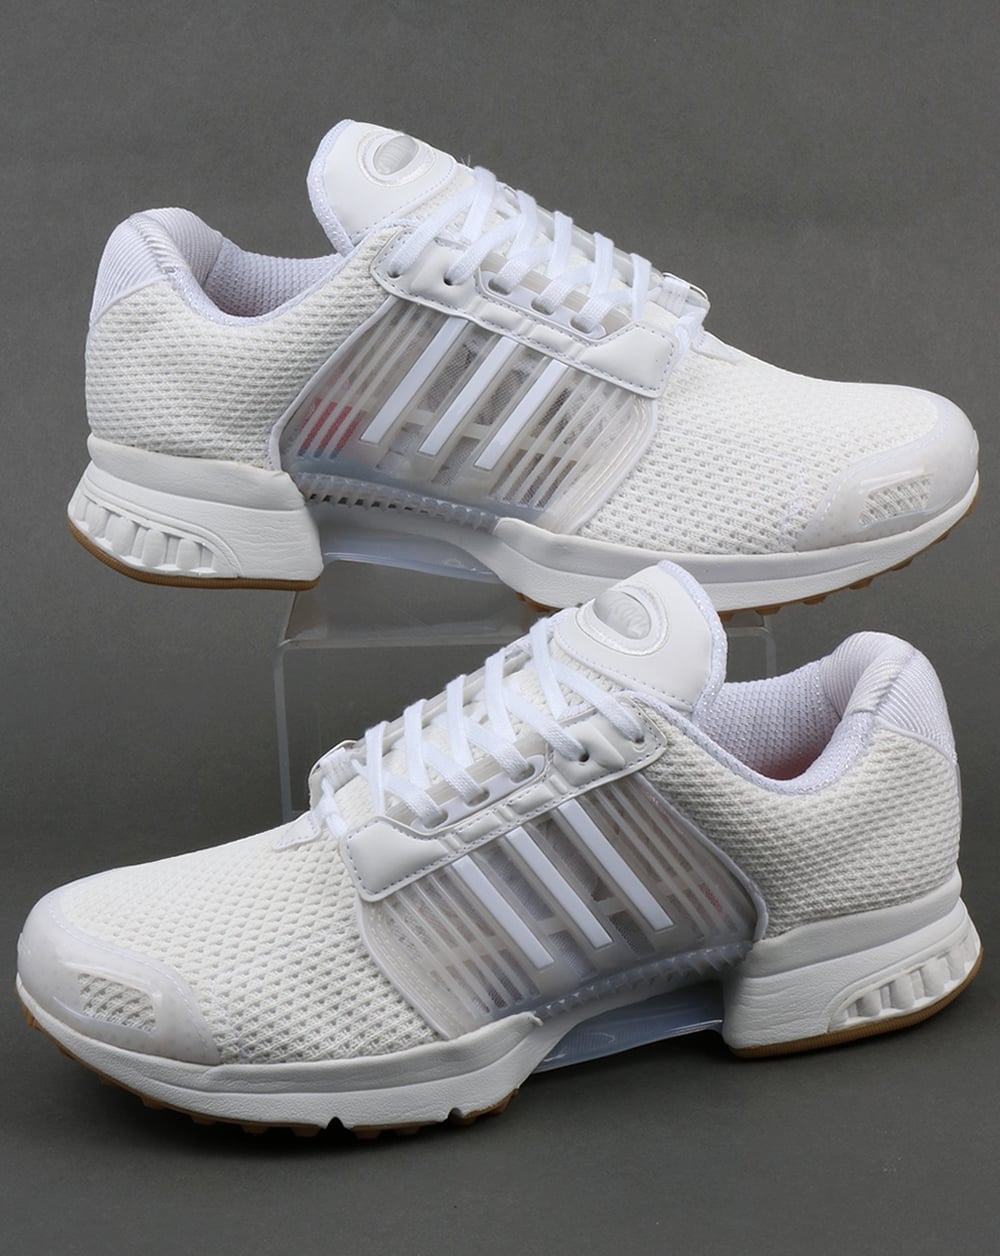 reputable site 33317 72d07 Adidas Climacool 1 Trainers White/Gum